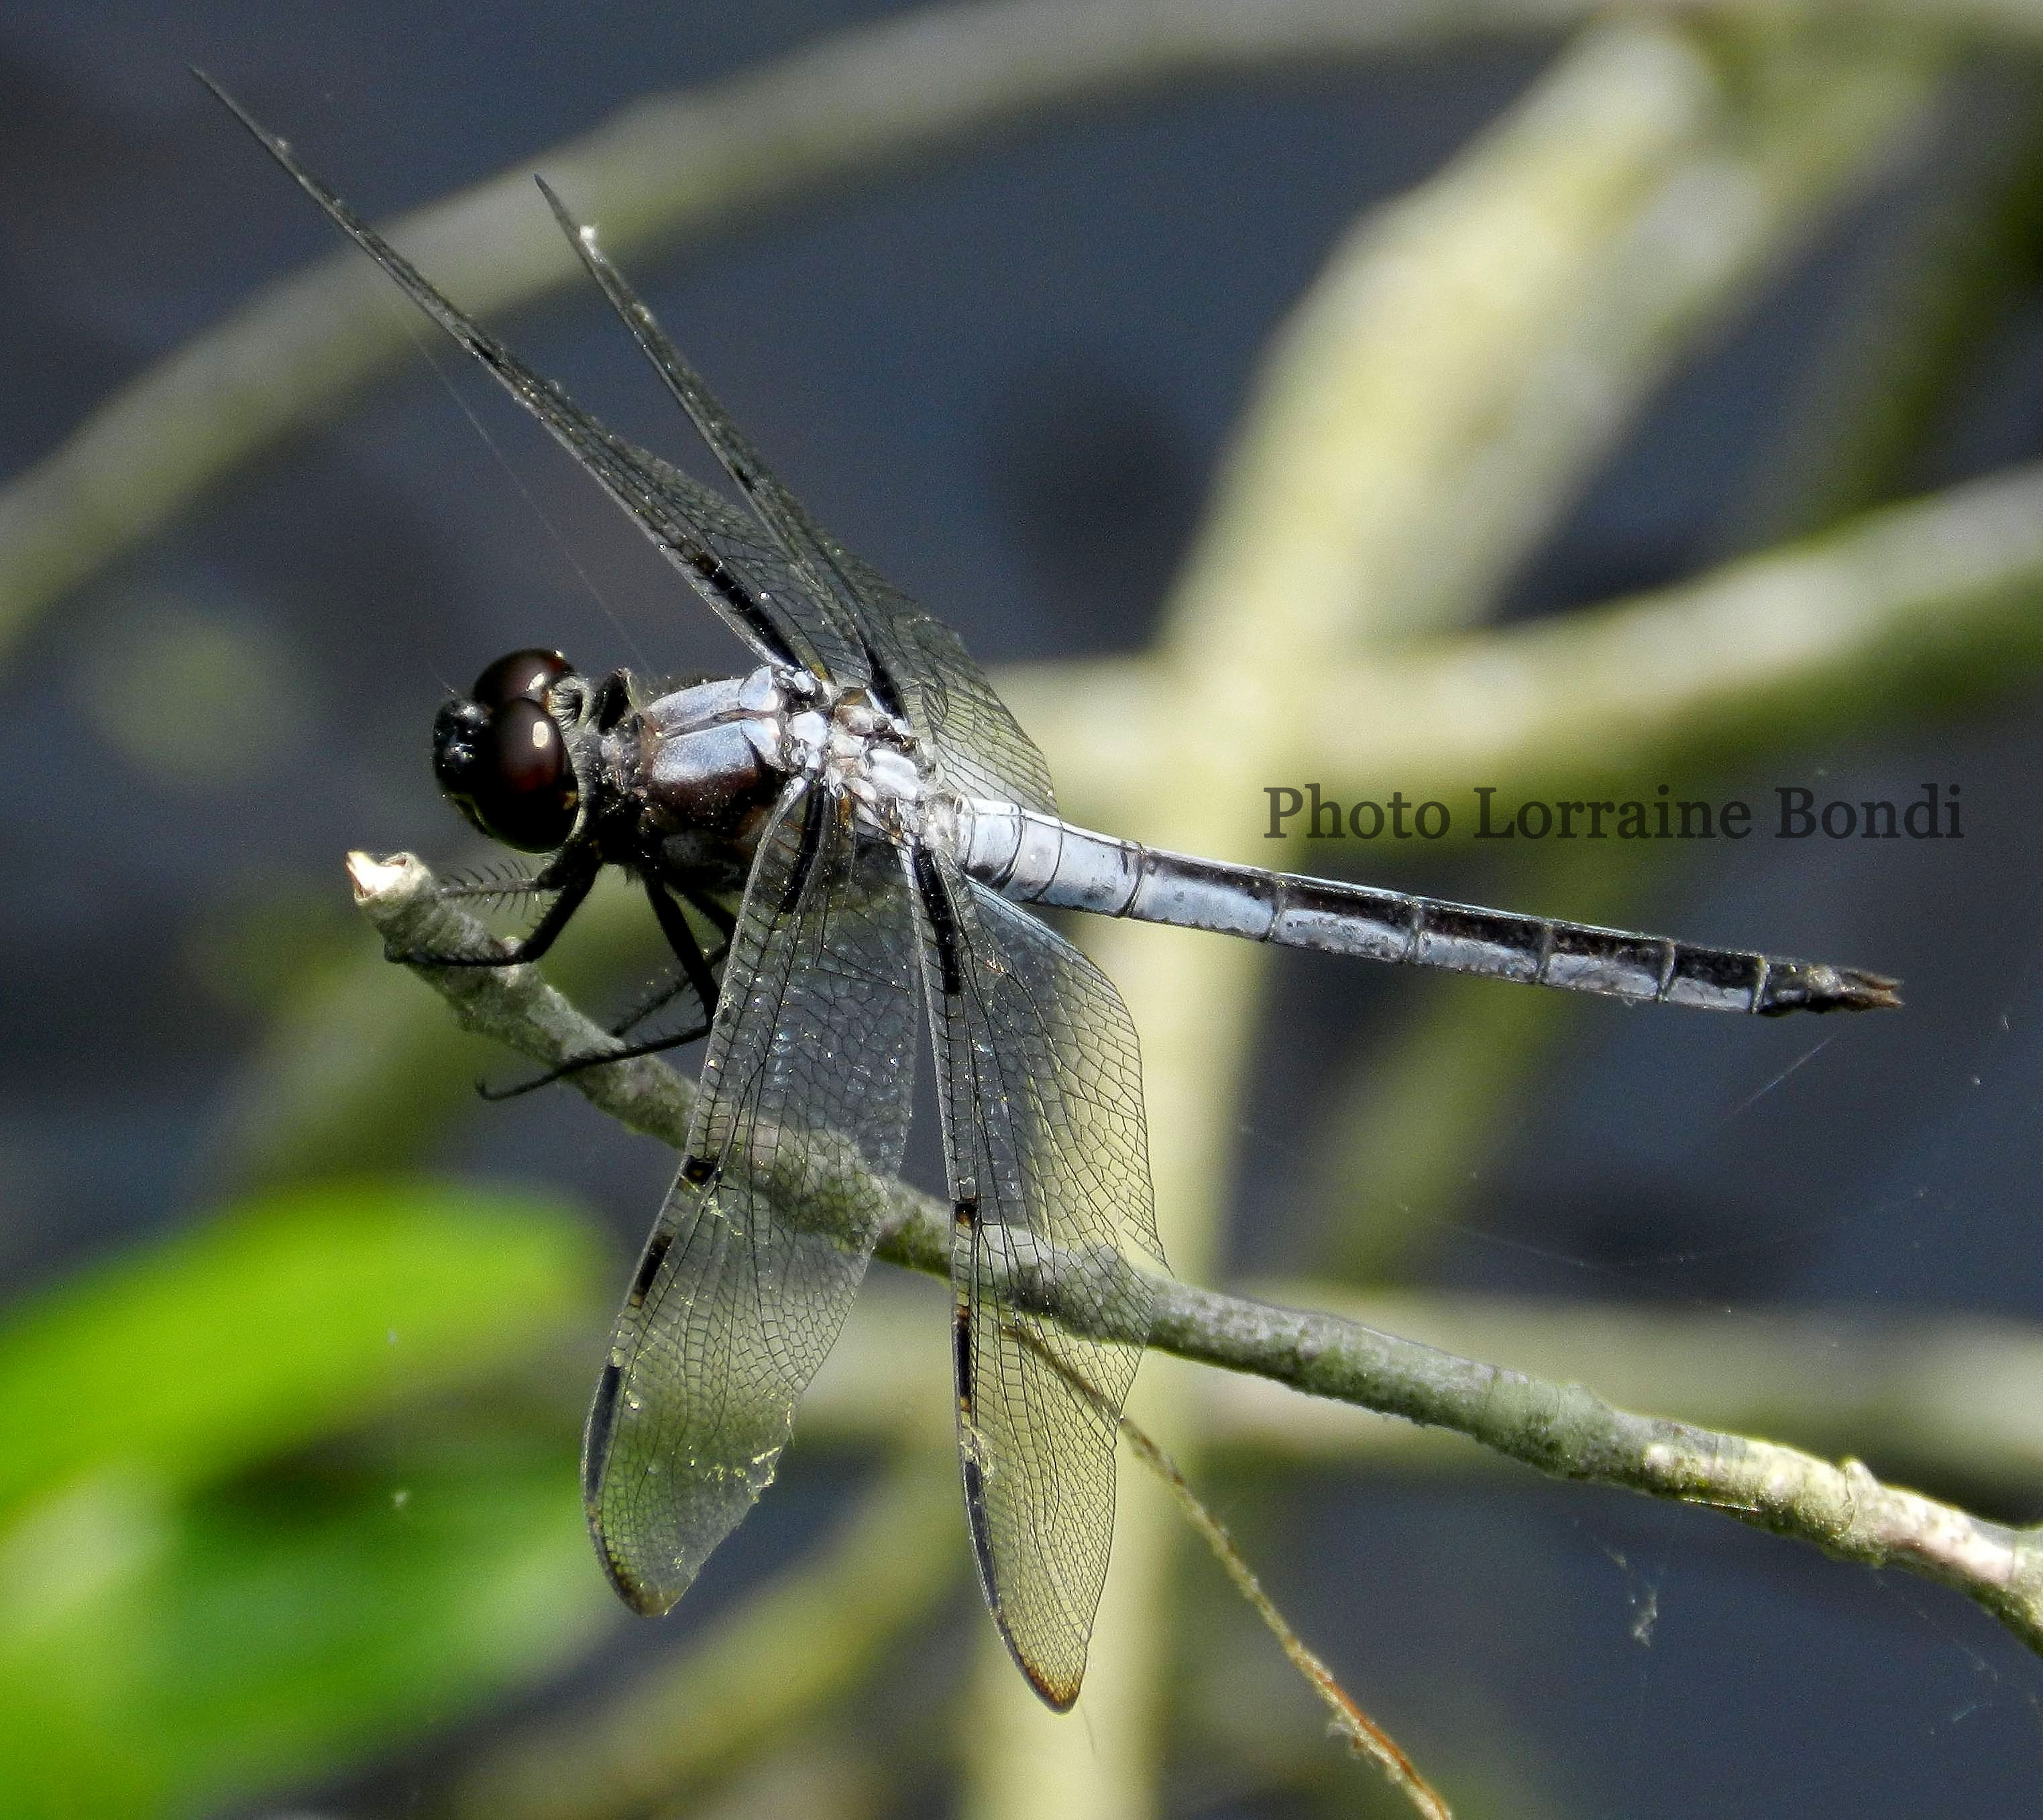 Many species of dragonflies can be found in the Preserve